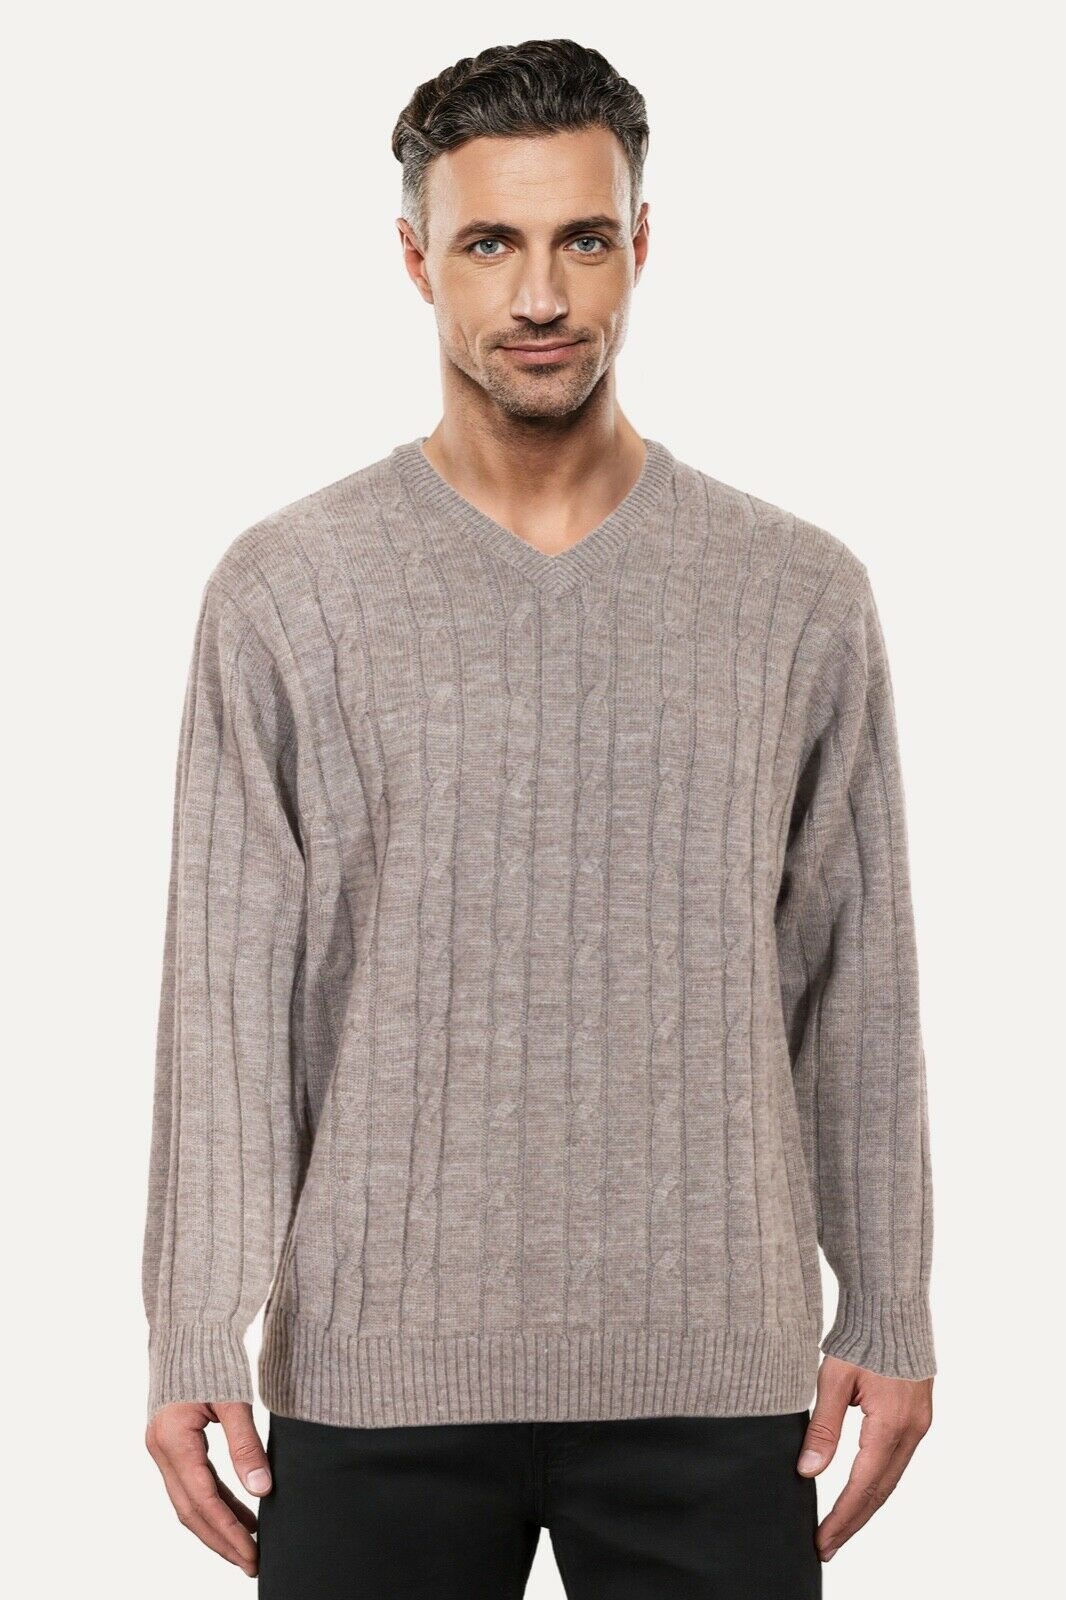 Ansett Pure wolleCable Knit V Neck Jumper schweißer Knitwear Sable Beige Cream